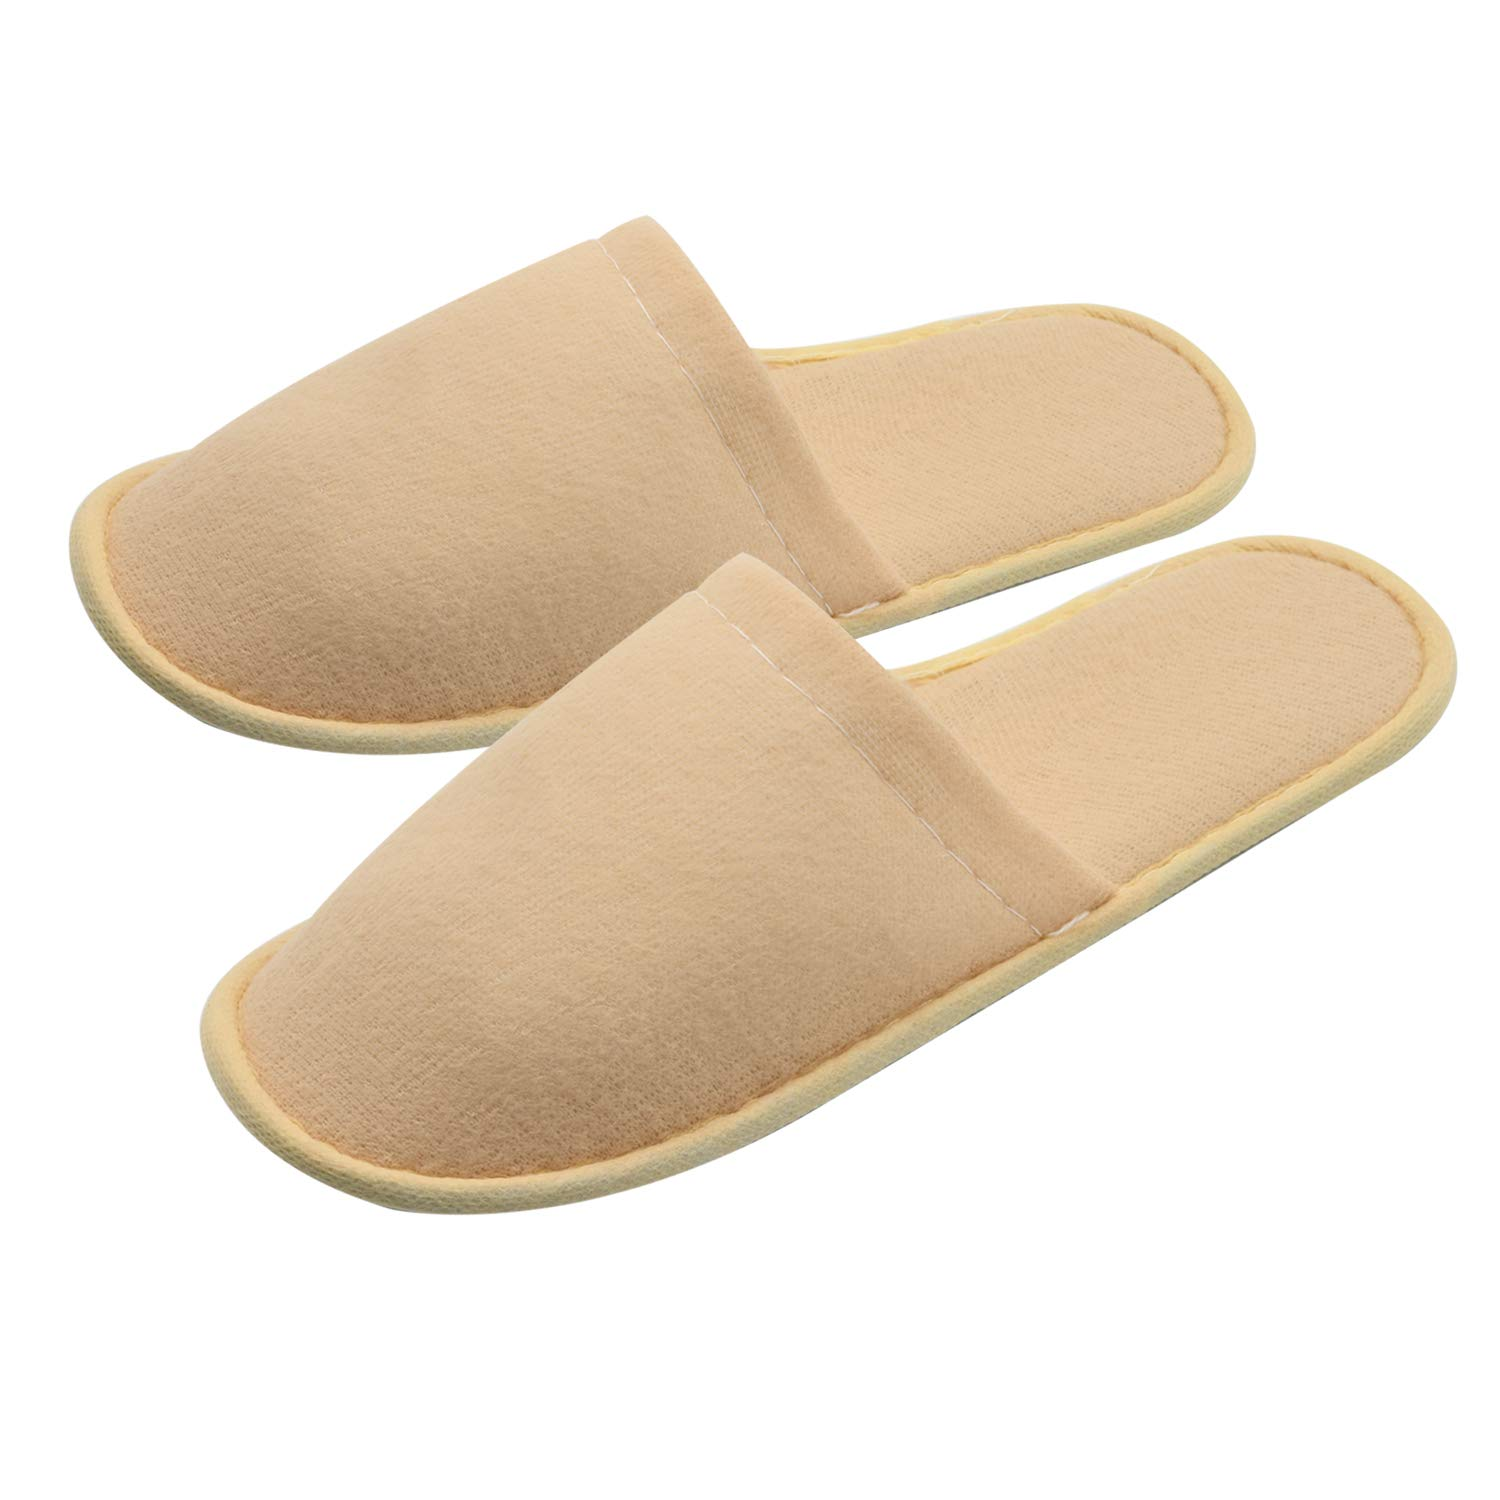 AILELAN Spa Slippers, 20 Pairs Cotton Velvet Closed Toe Disposable Slippers Fit Size for Men and Women for Hotel Home Guest Used, White Non-Slip Slippers by AILELAN